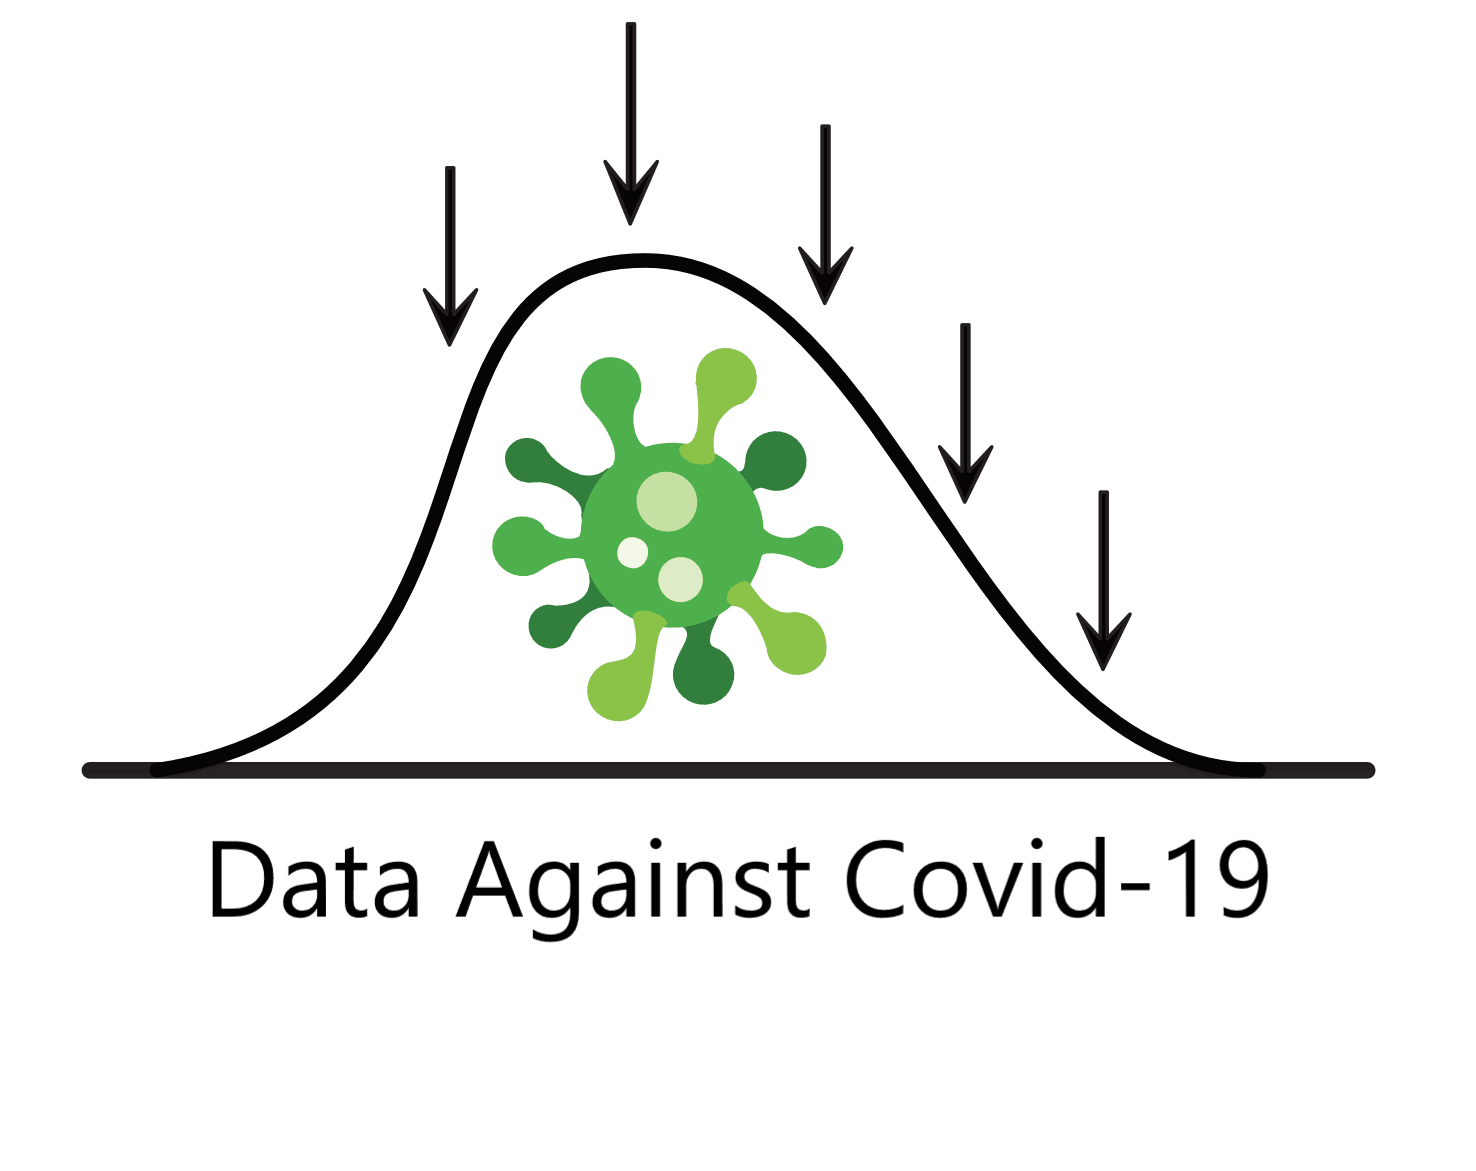 logo data against covid-19